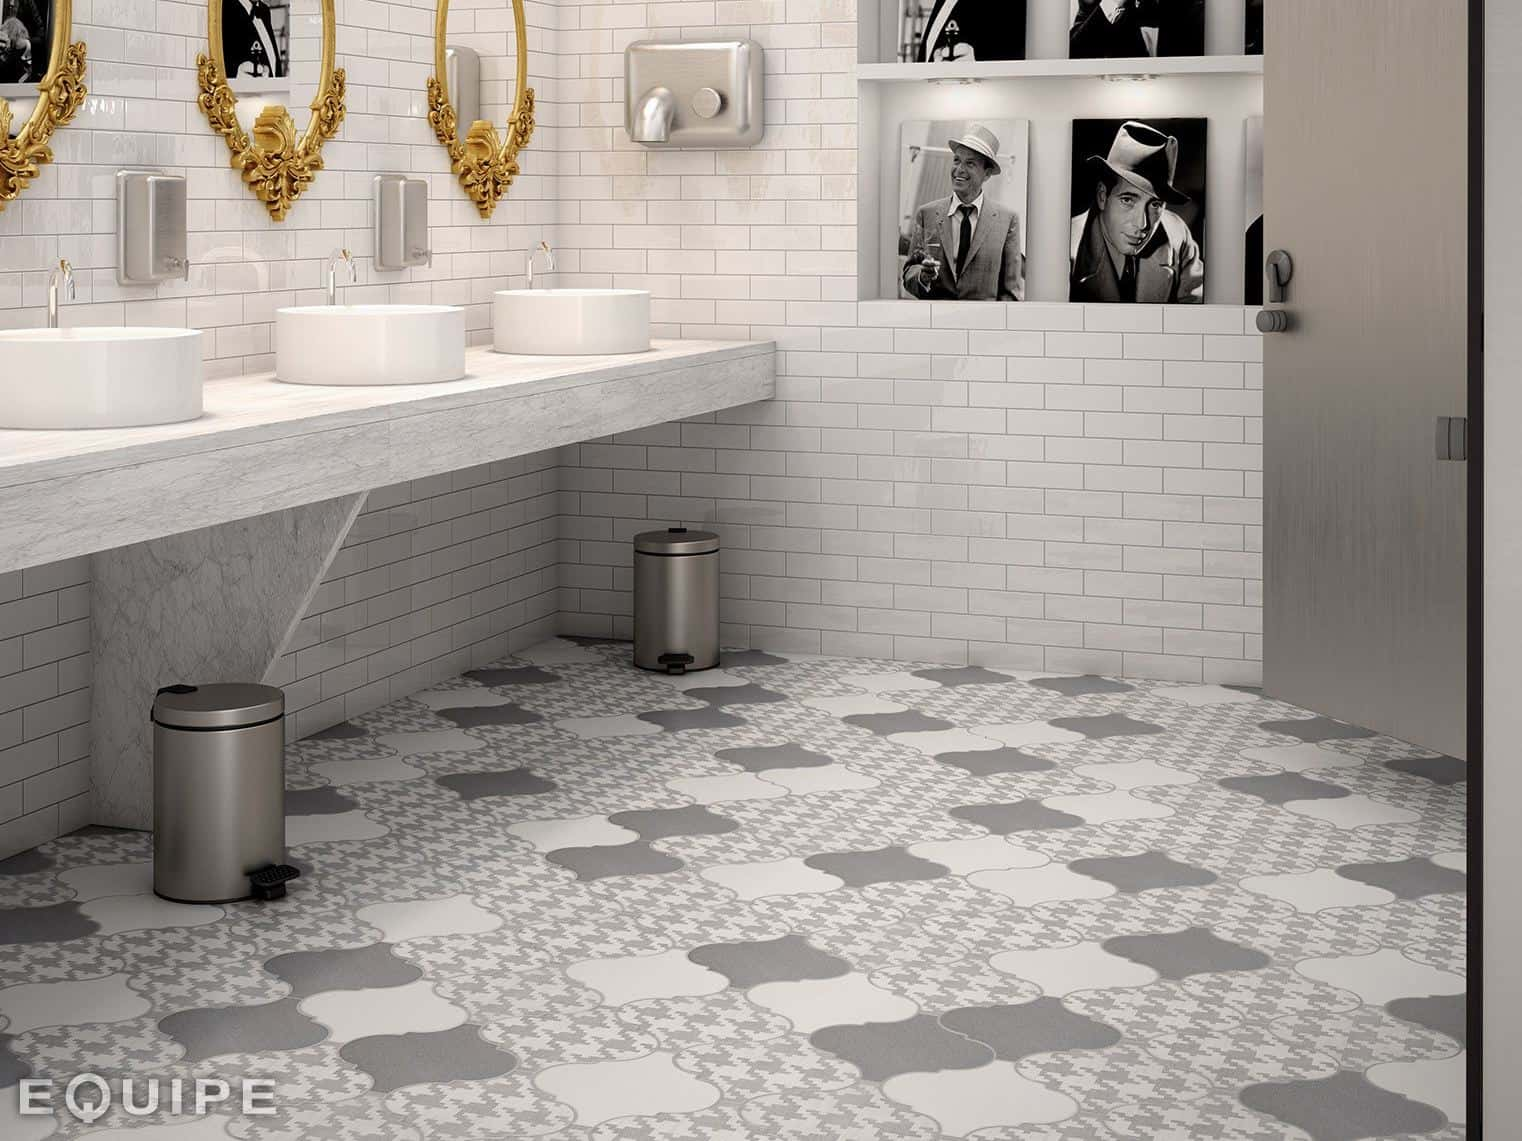 wall and floor tiles for bathroom 21 arabesque tile ideas for floor wall and backsplash 25828